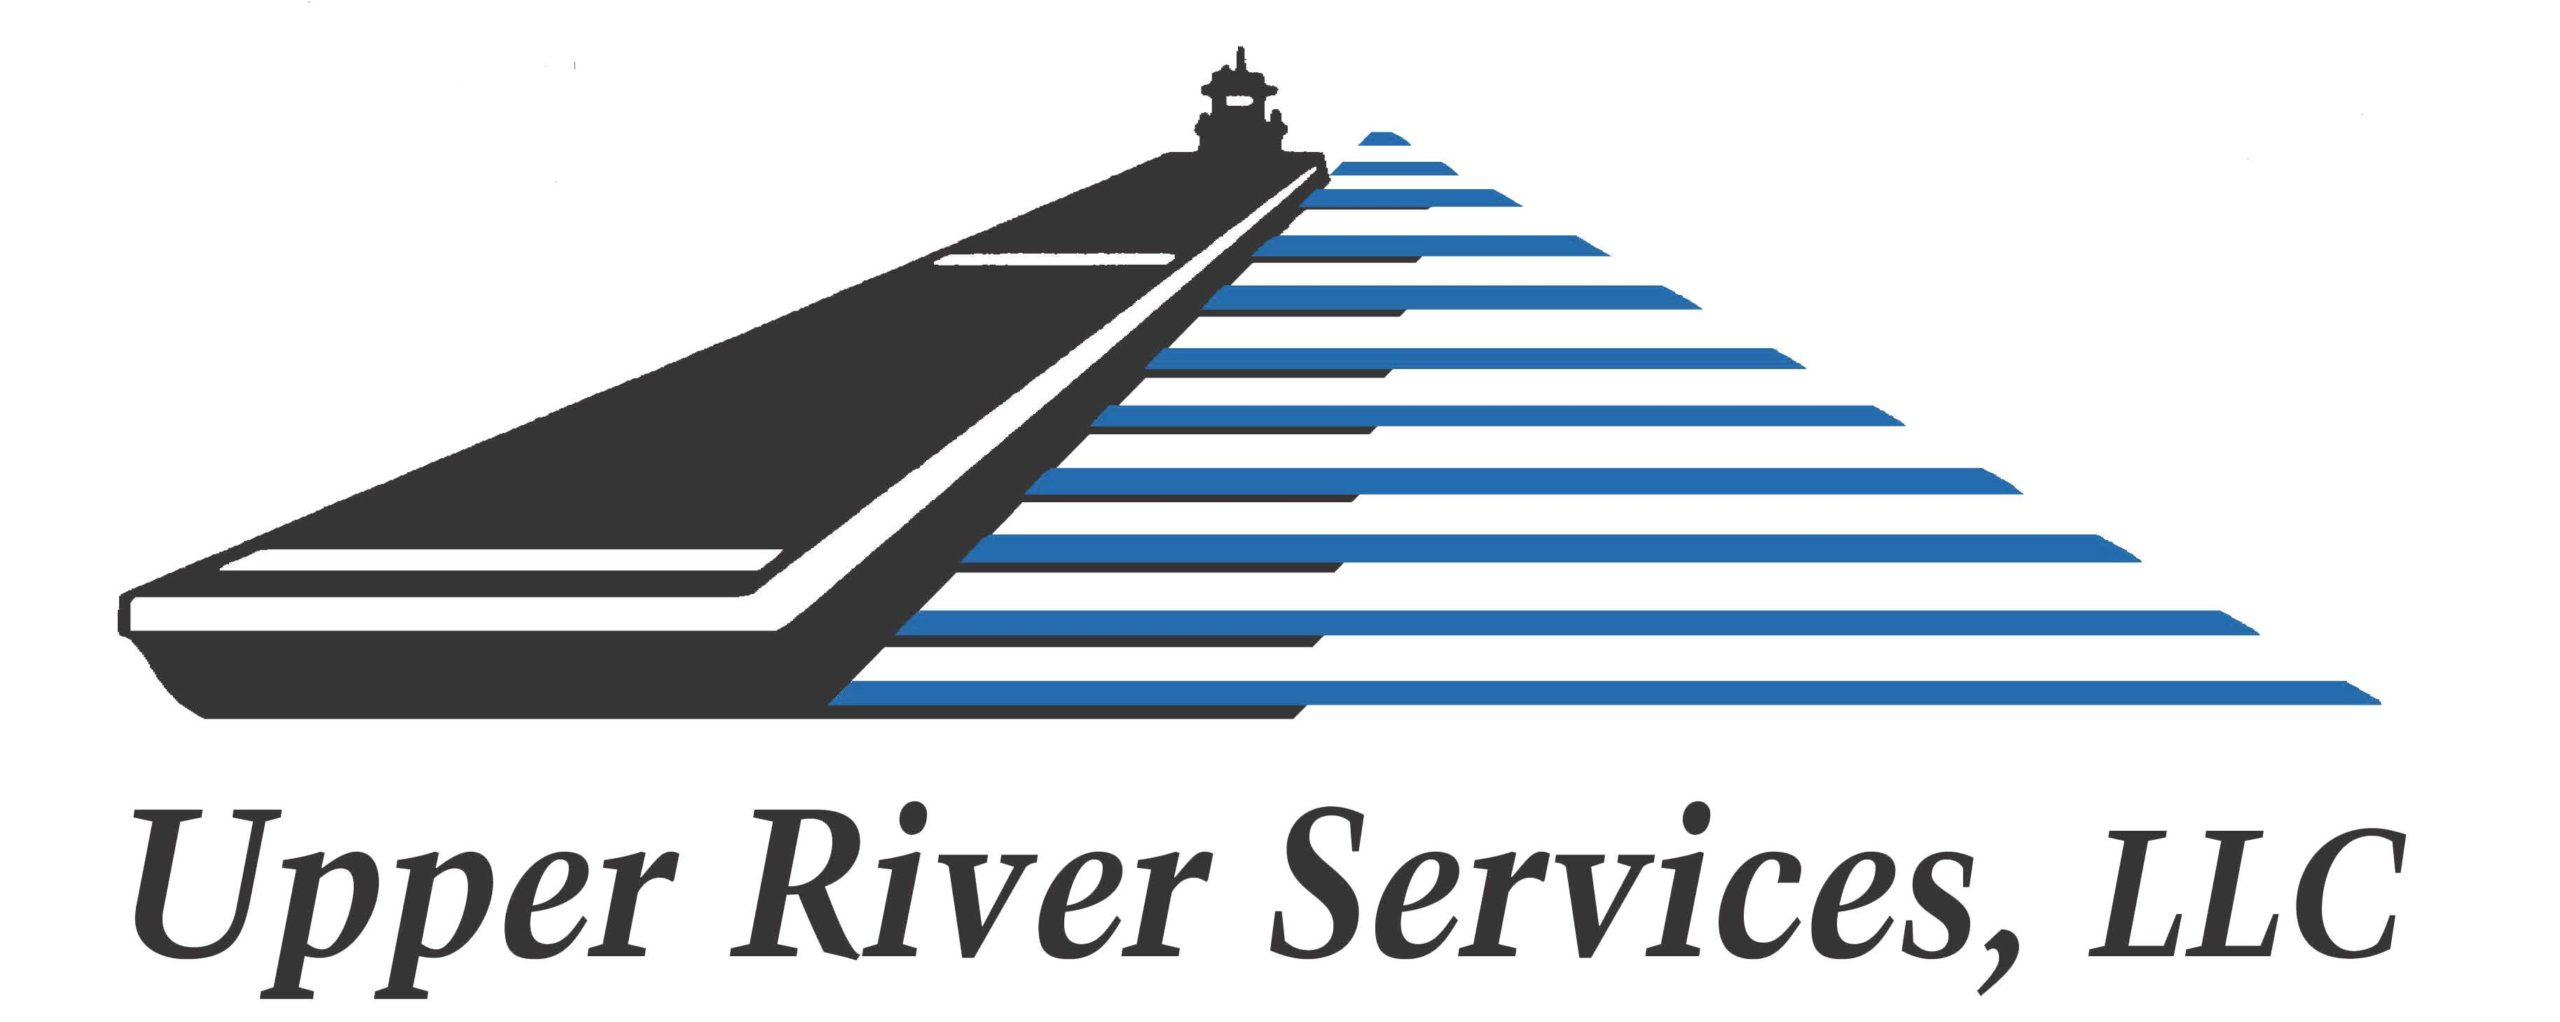 Upper River Services